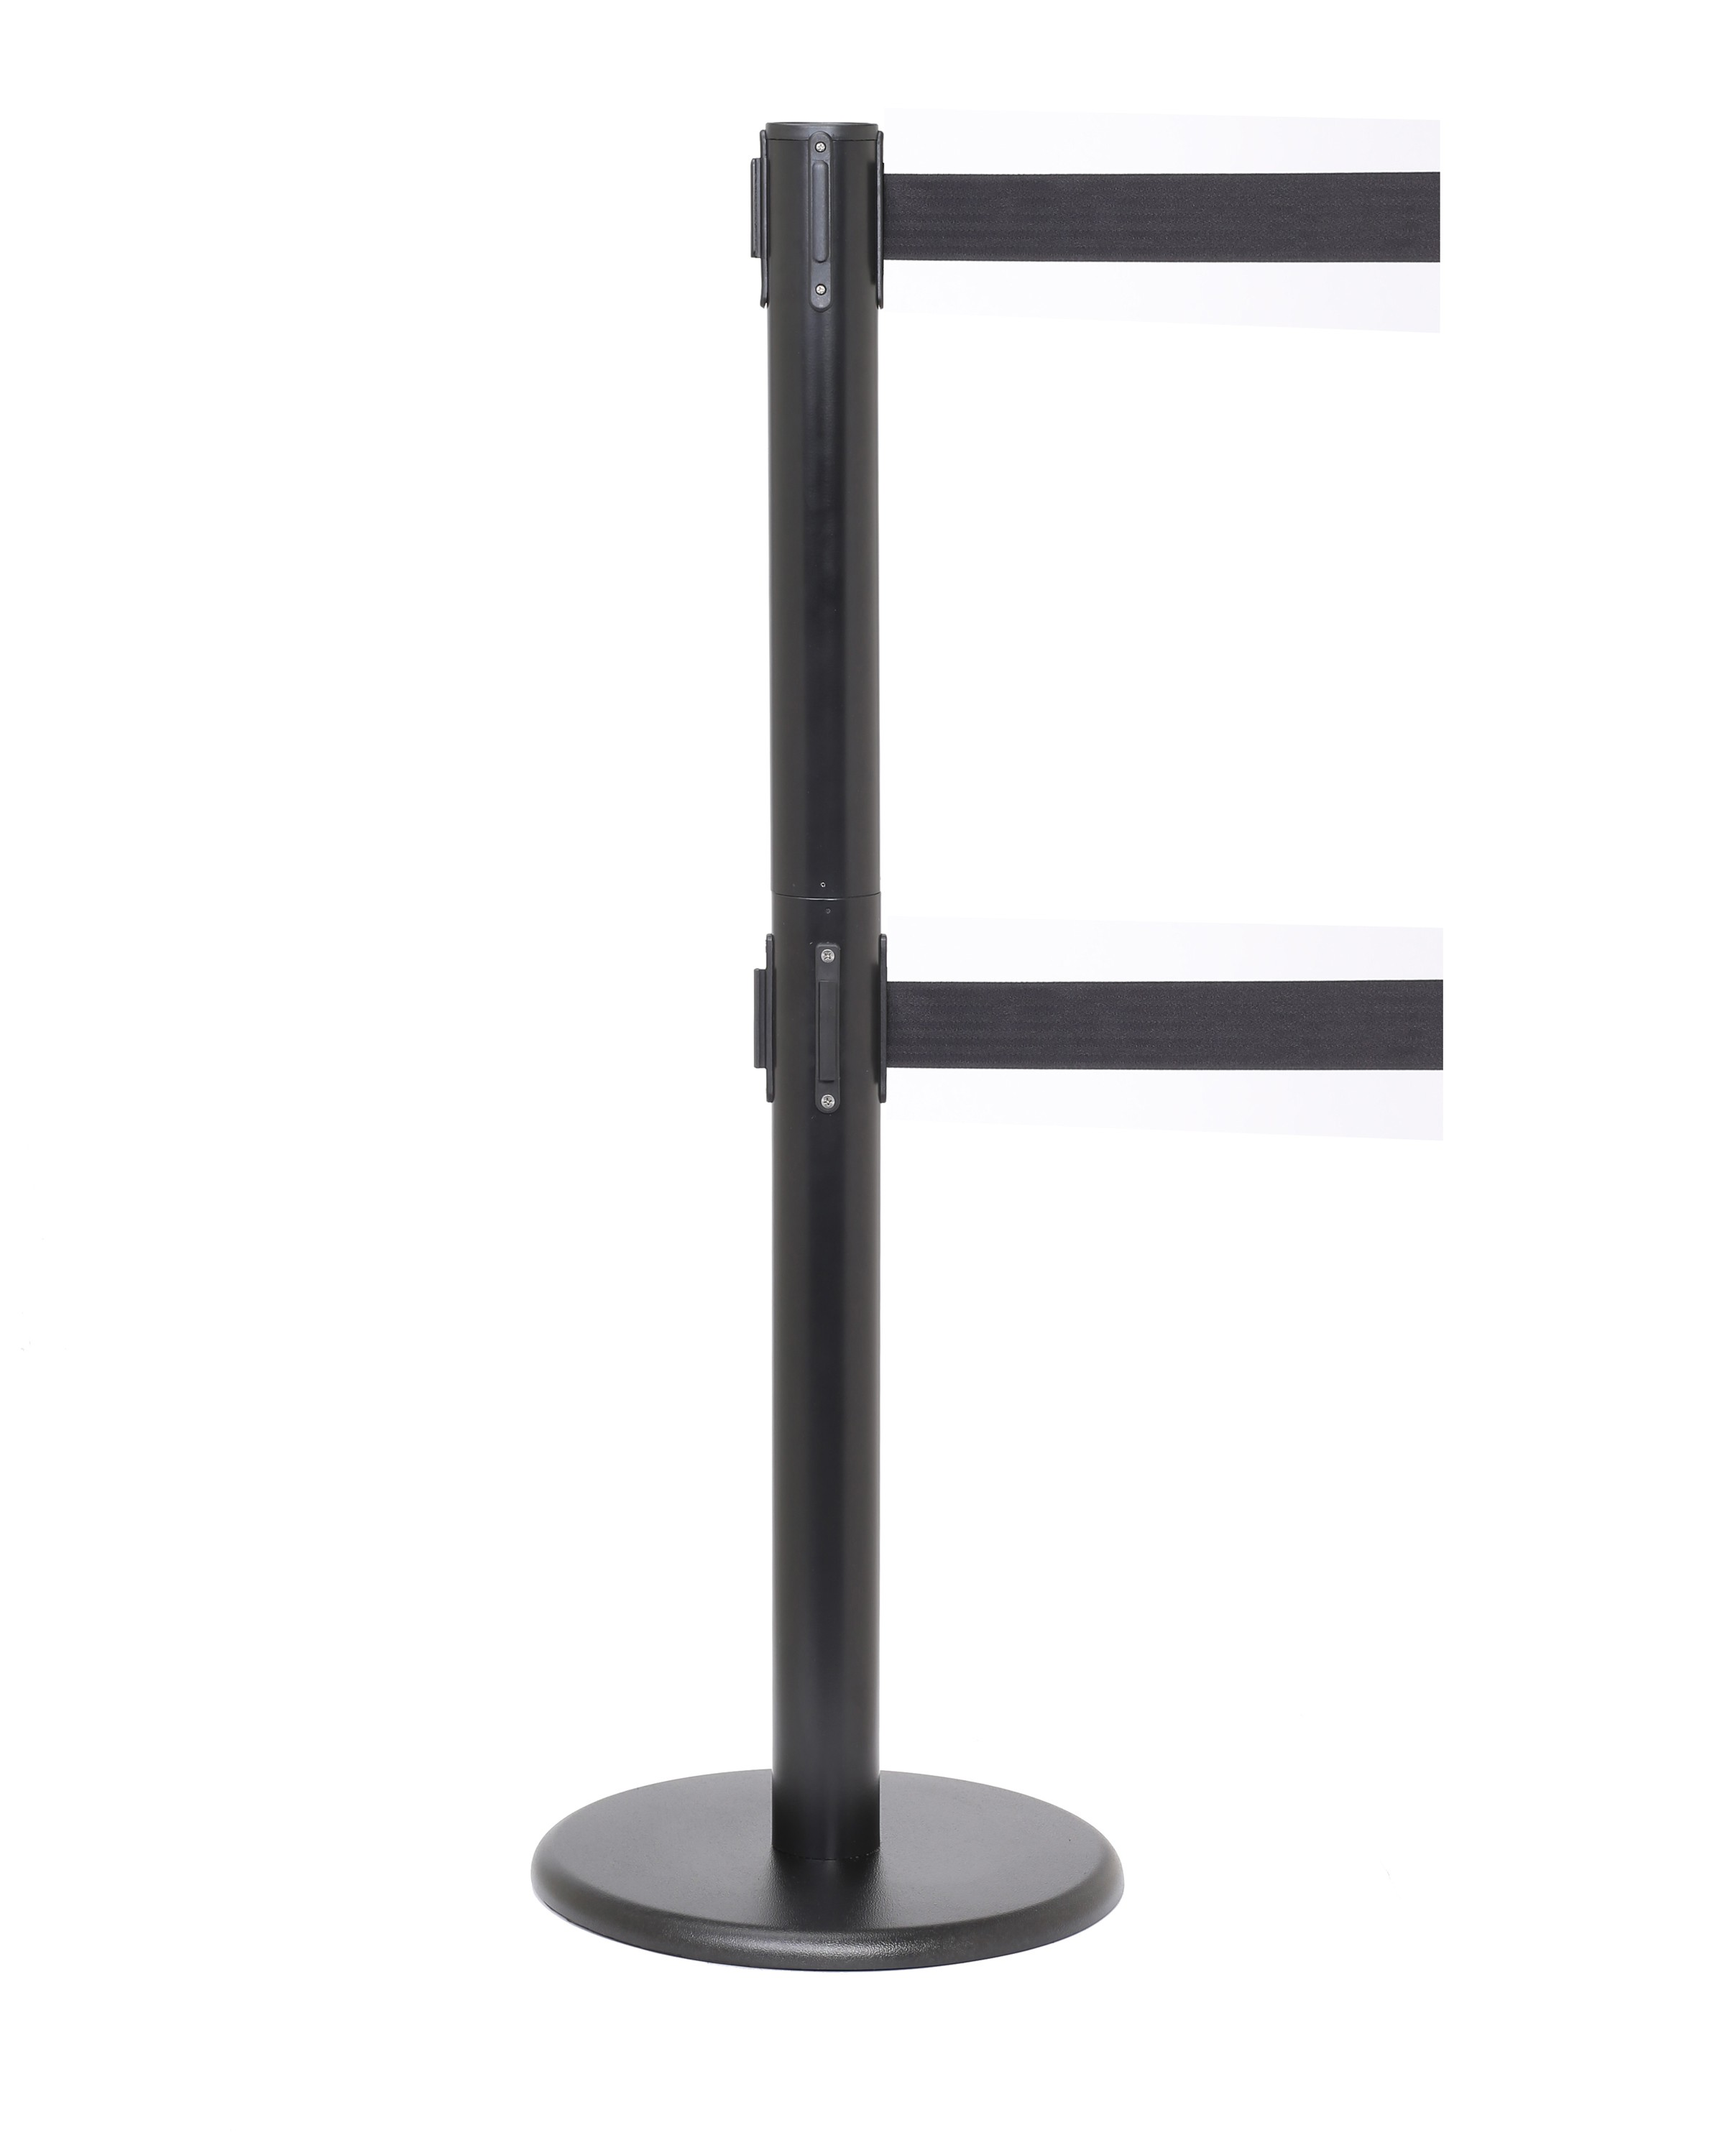 Dual Belt Stanchion Image